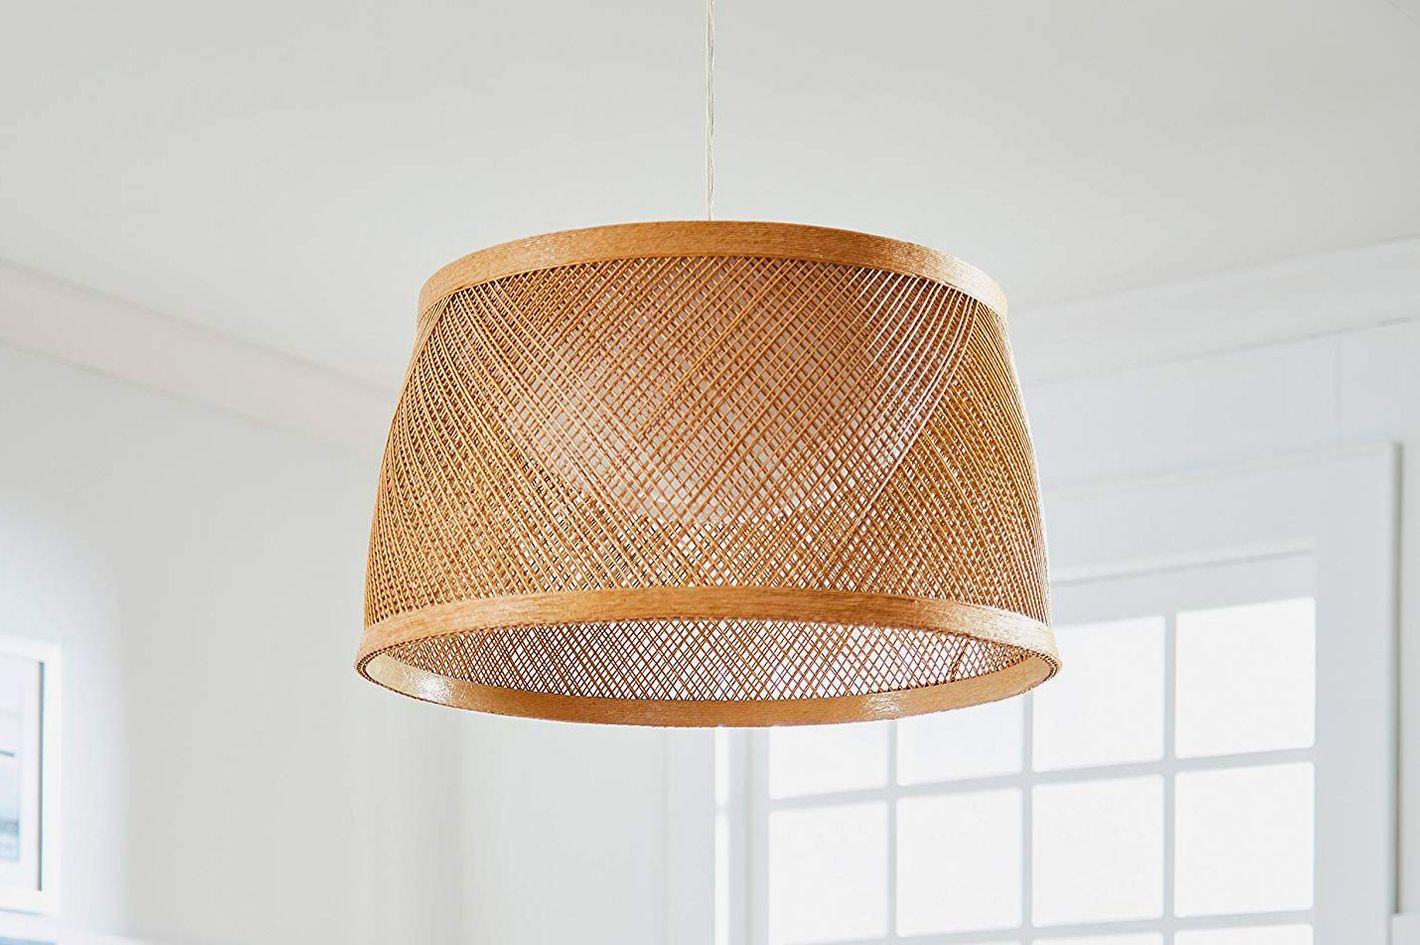 Stone & Beam Modern Coastal Raffia Chandelier, with LED Board